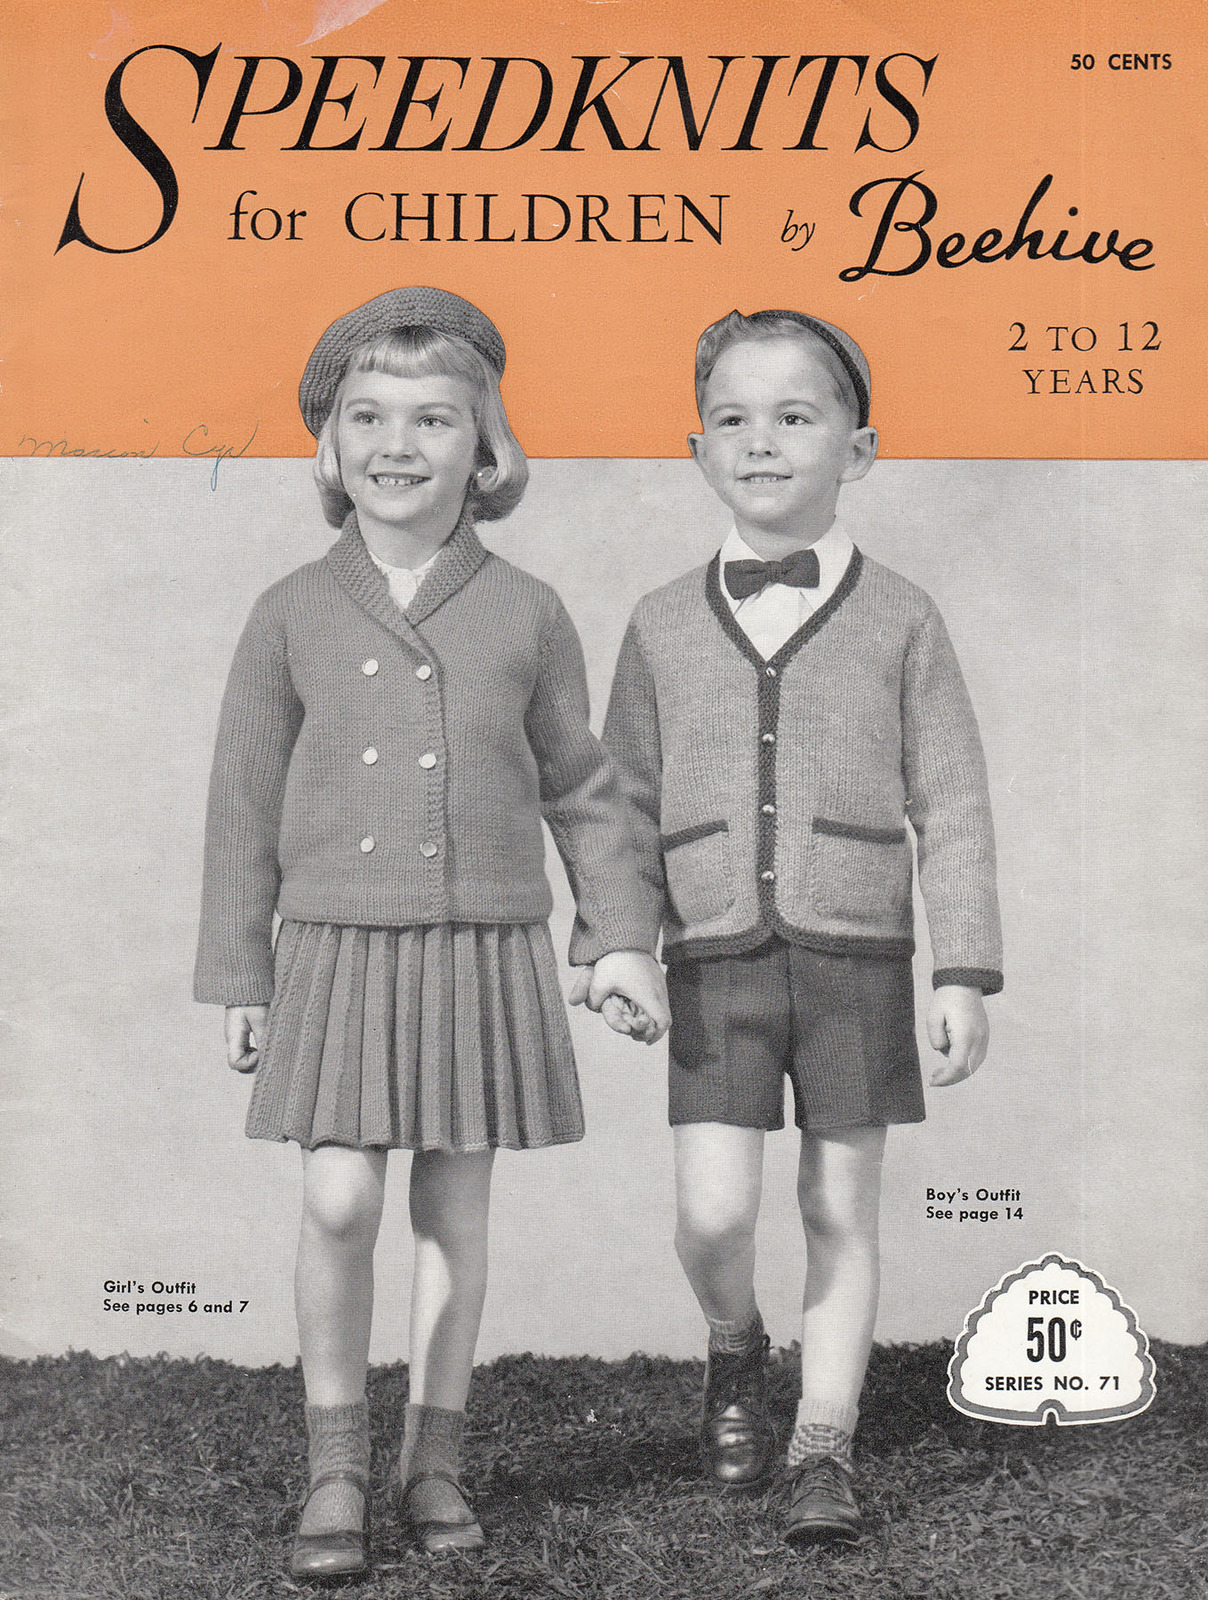 Primary image for BEEHIVE SPEEDKNITS FOR CHILDREN #71 VINTAGE 2 TO 12 YEARS PATONS & BALDWIN KNIT